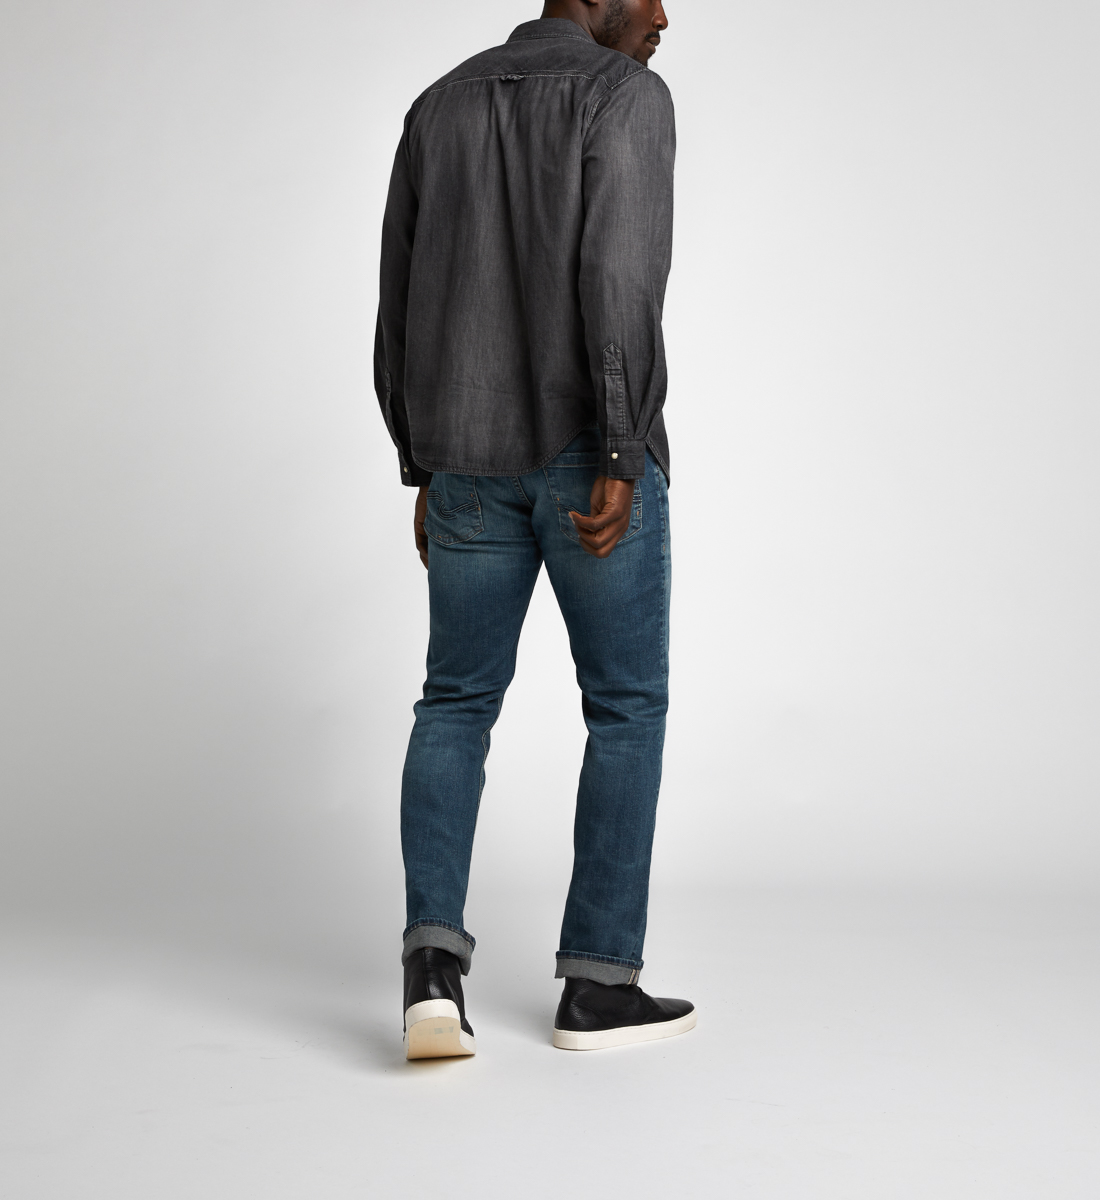 Charles Classic Denim Shirt Final Sale,Black Side